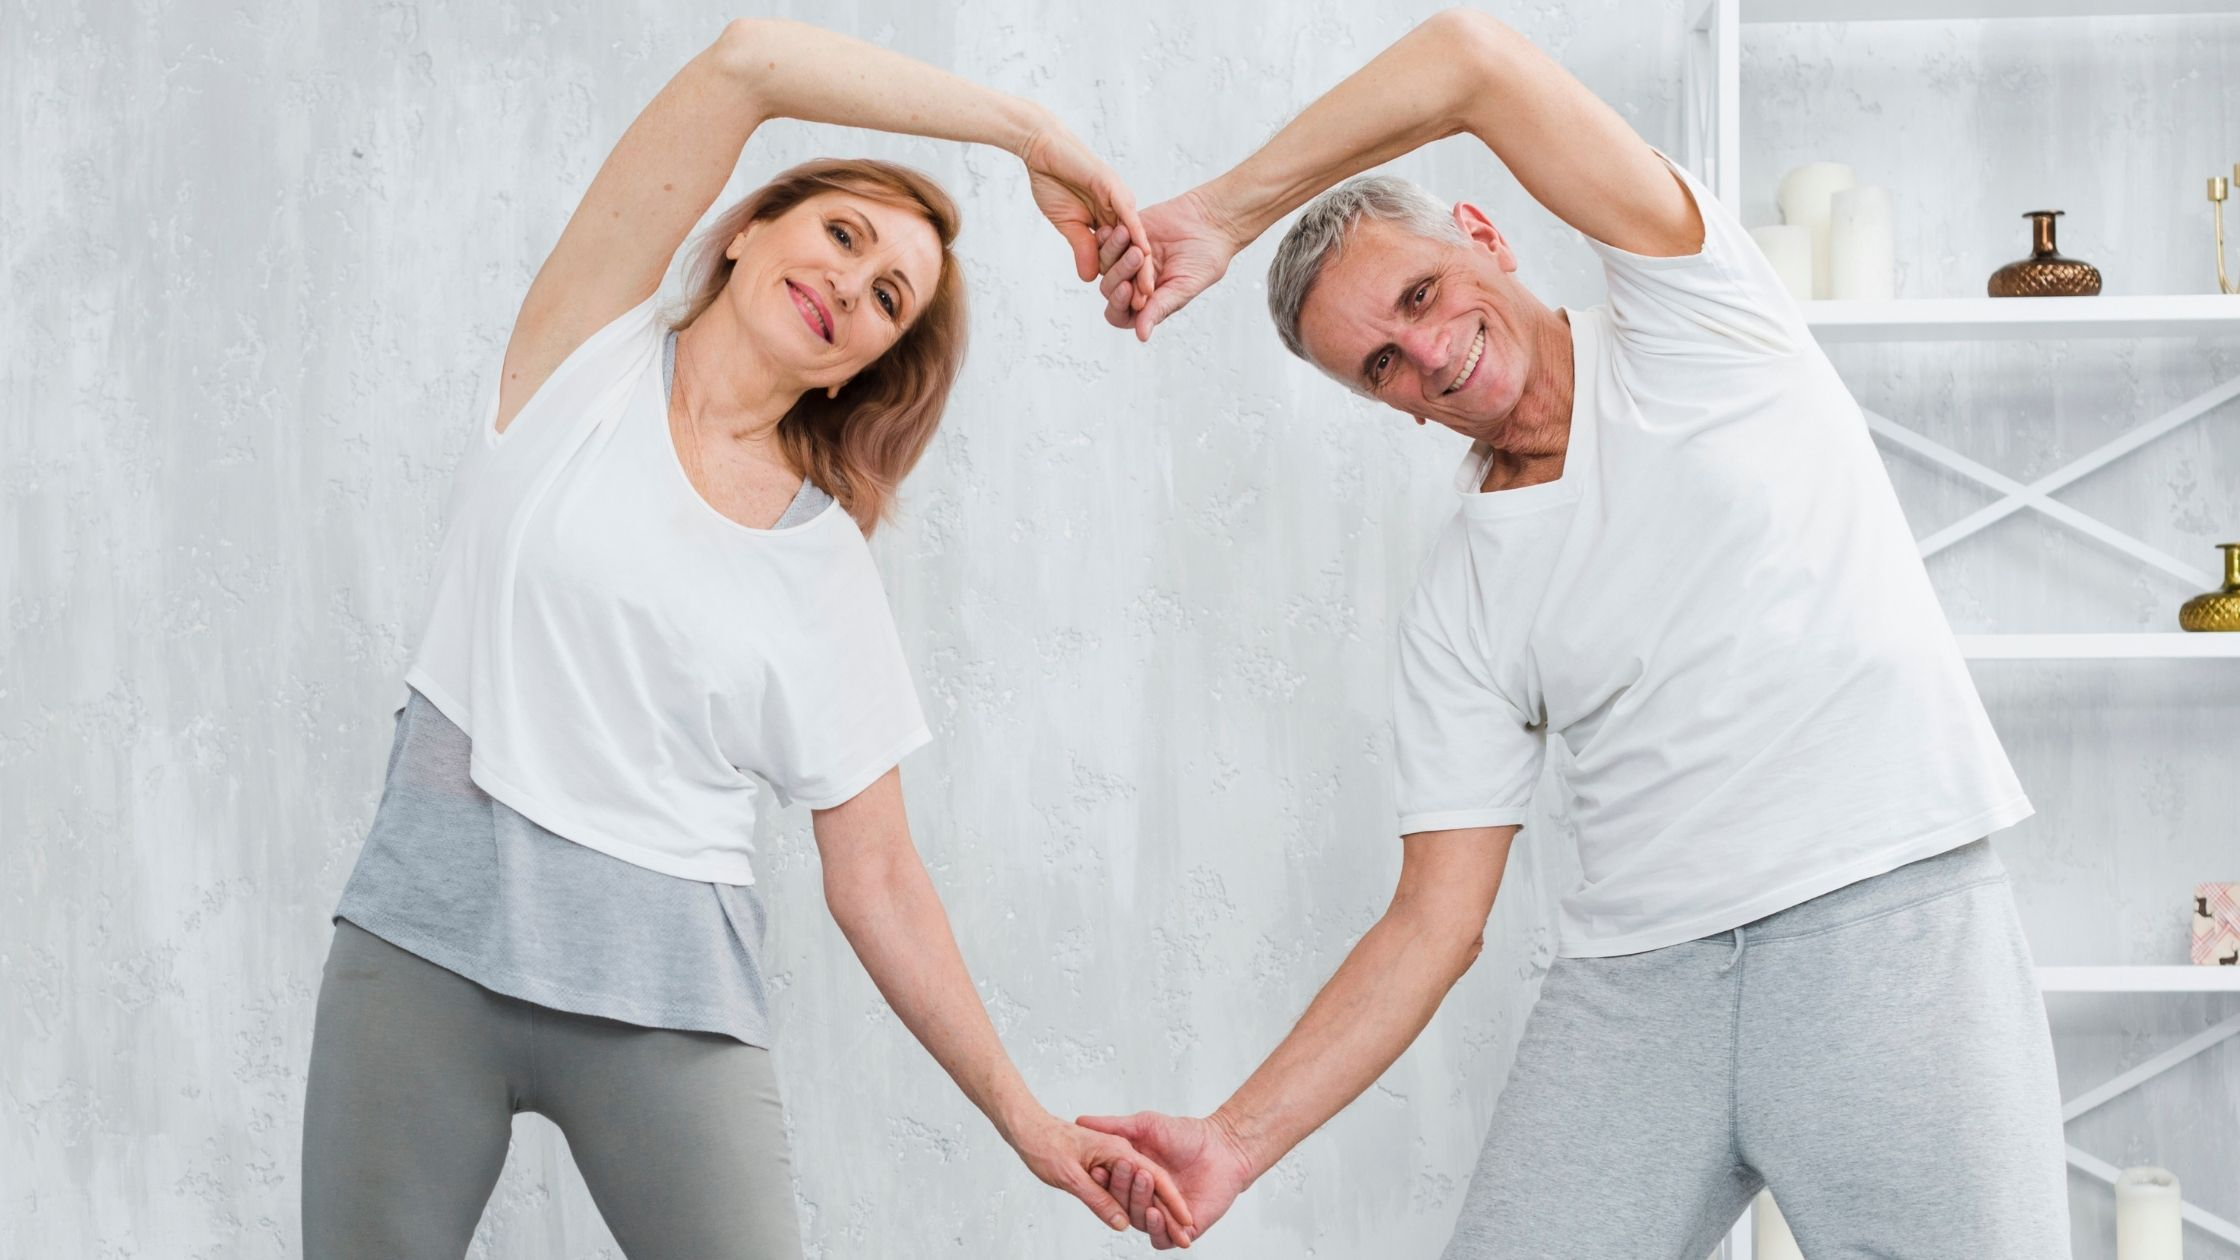 Fall in Love with Exercise with These 3 Tips